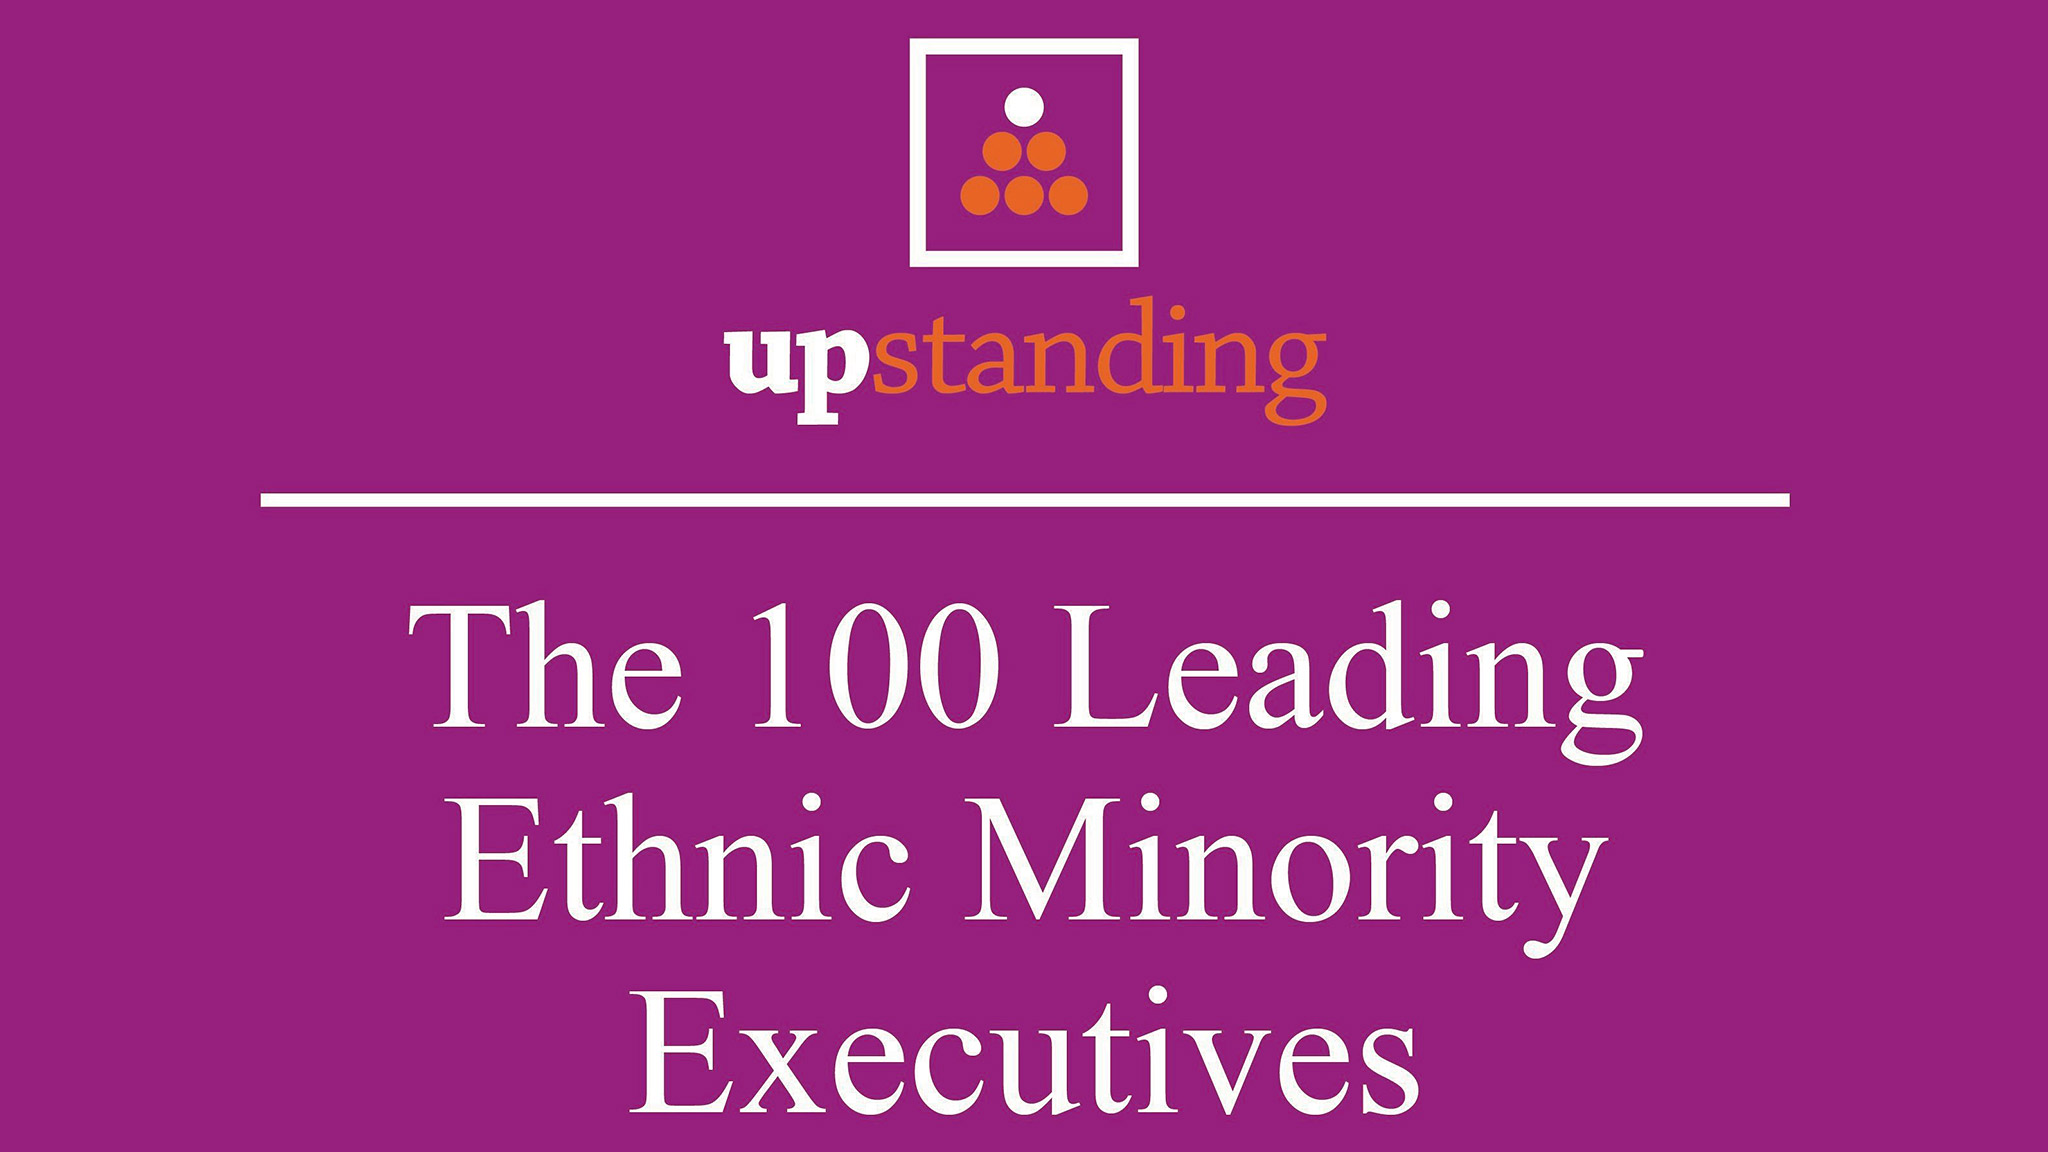 Diversity And Inclusion Quotes Diversity Champions Upstanding's Top 100 Ethnicminority Executives